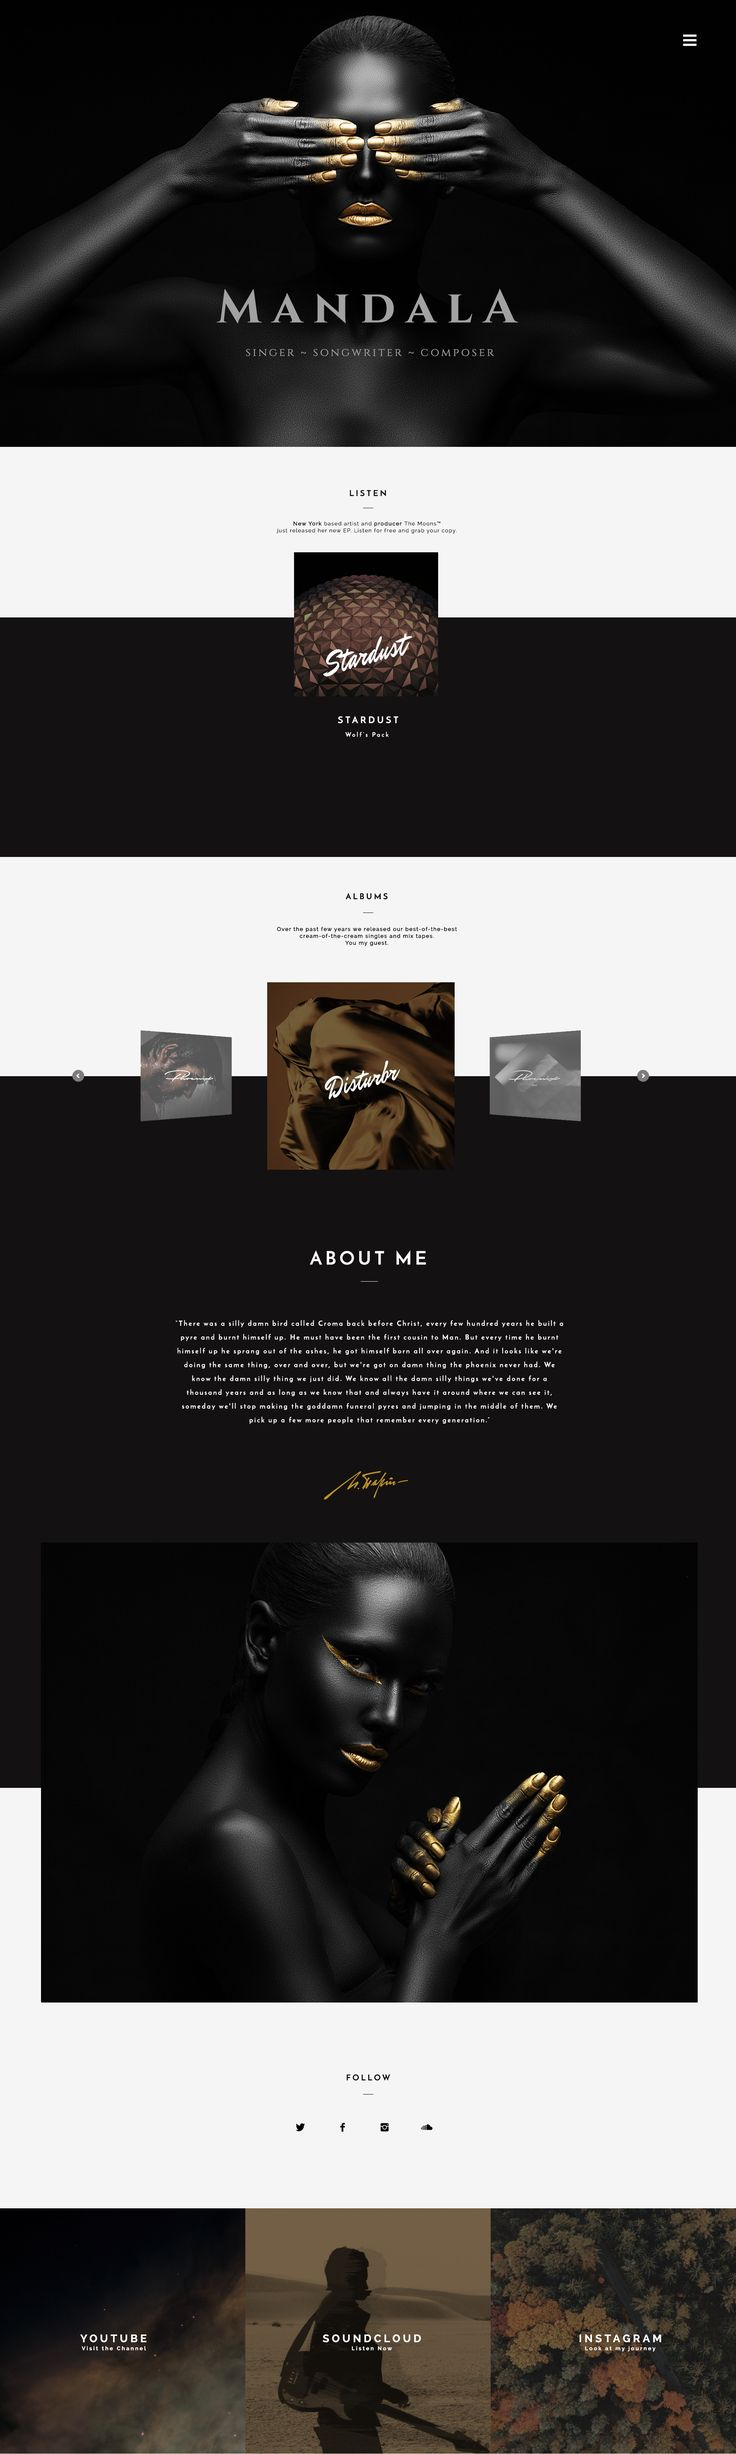 12 best sonaar website templates images on pinterest mandala wordpress theme has been crafted for singers musicians artists and music composers who care about their brand mandala is about harmony maxwellsz